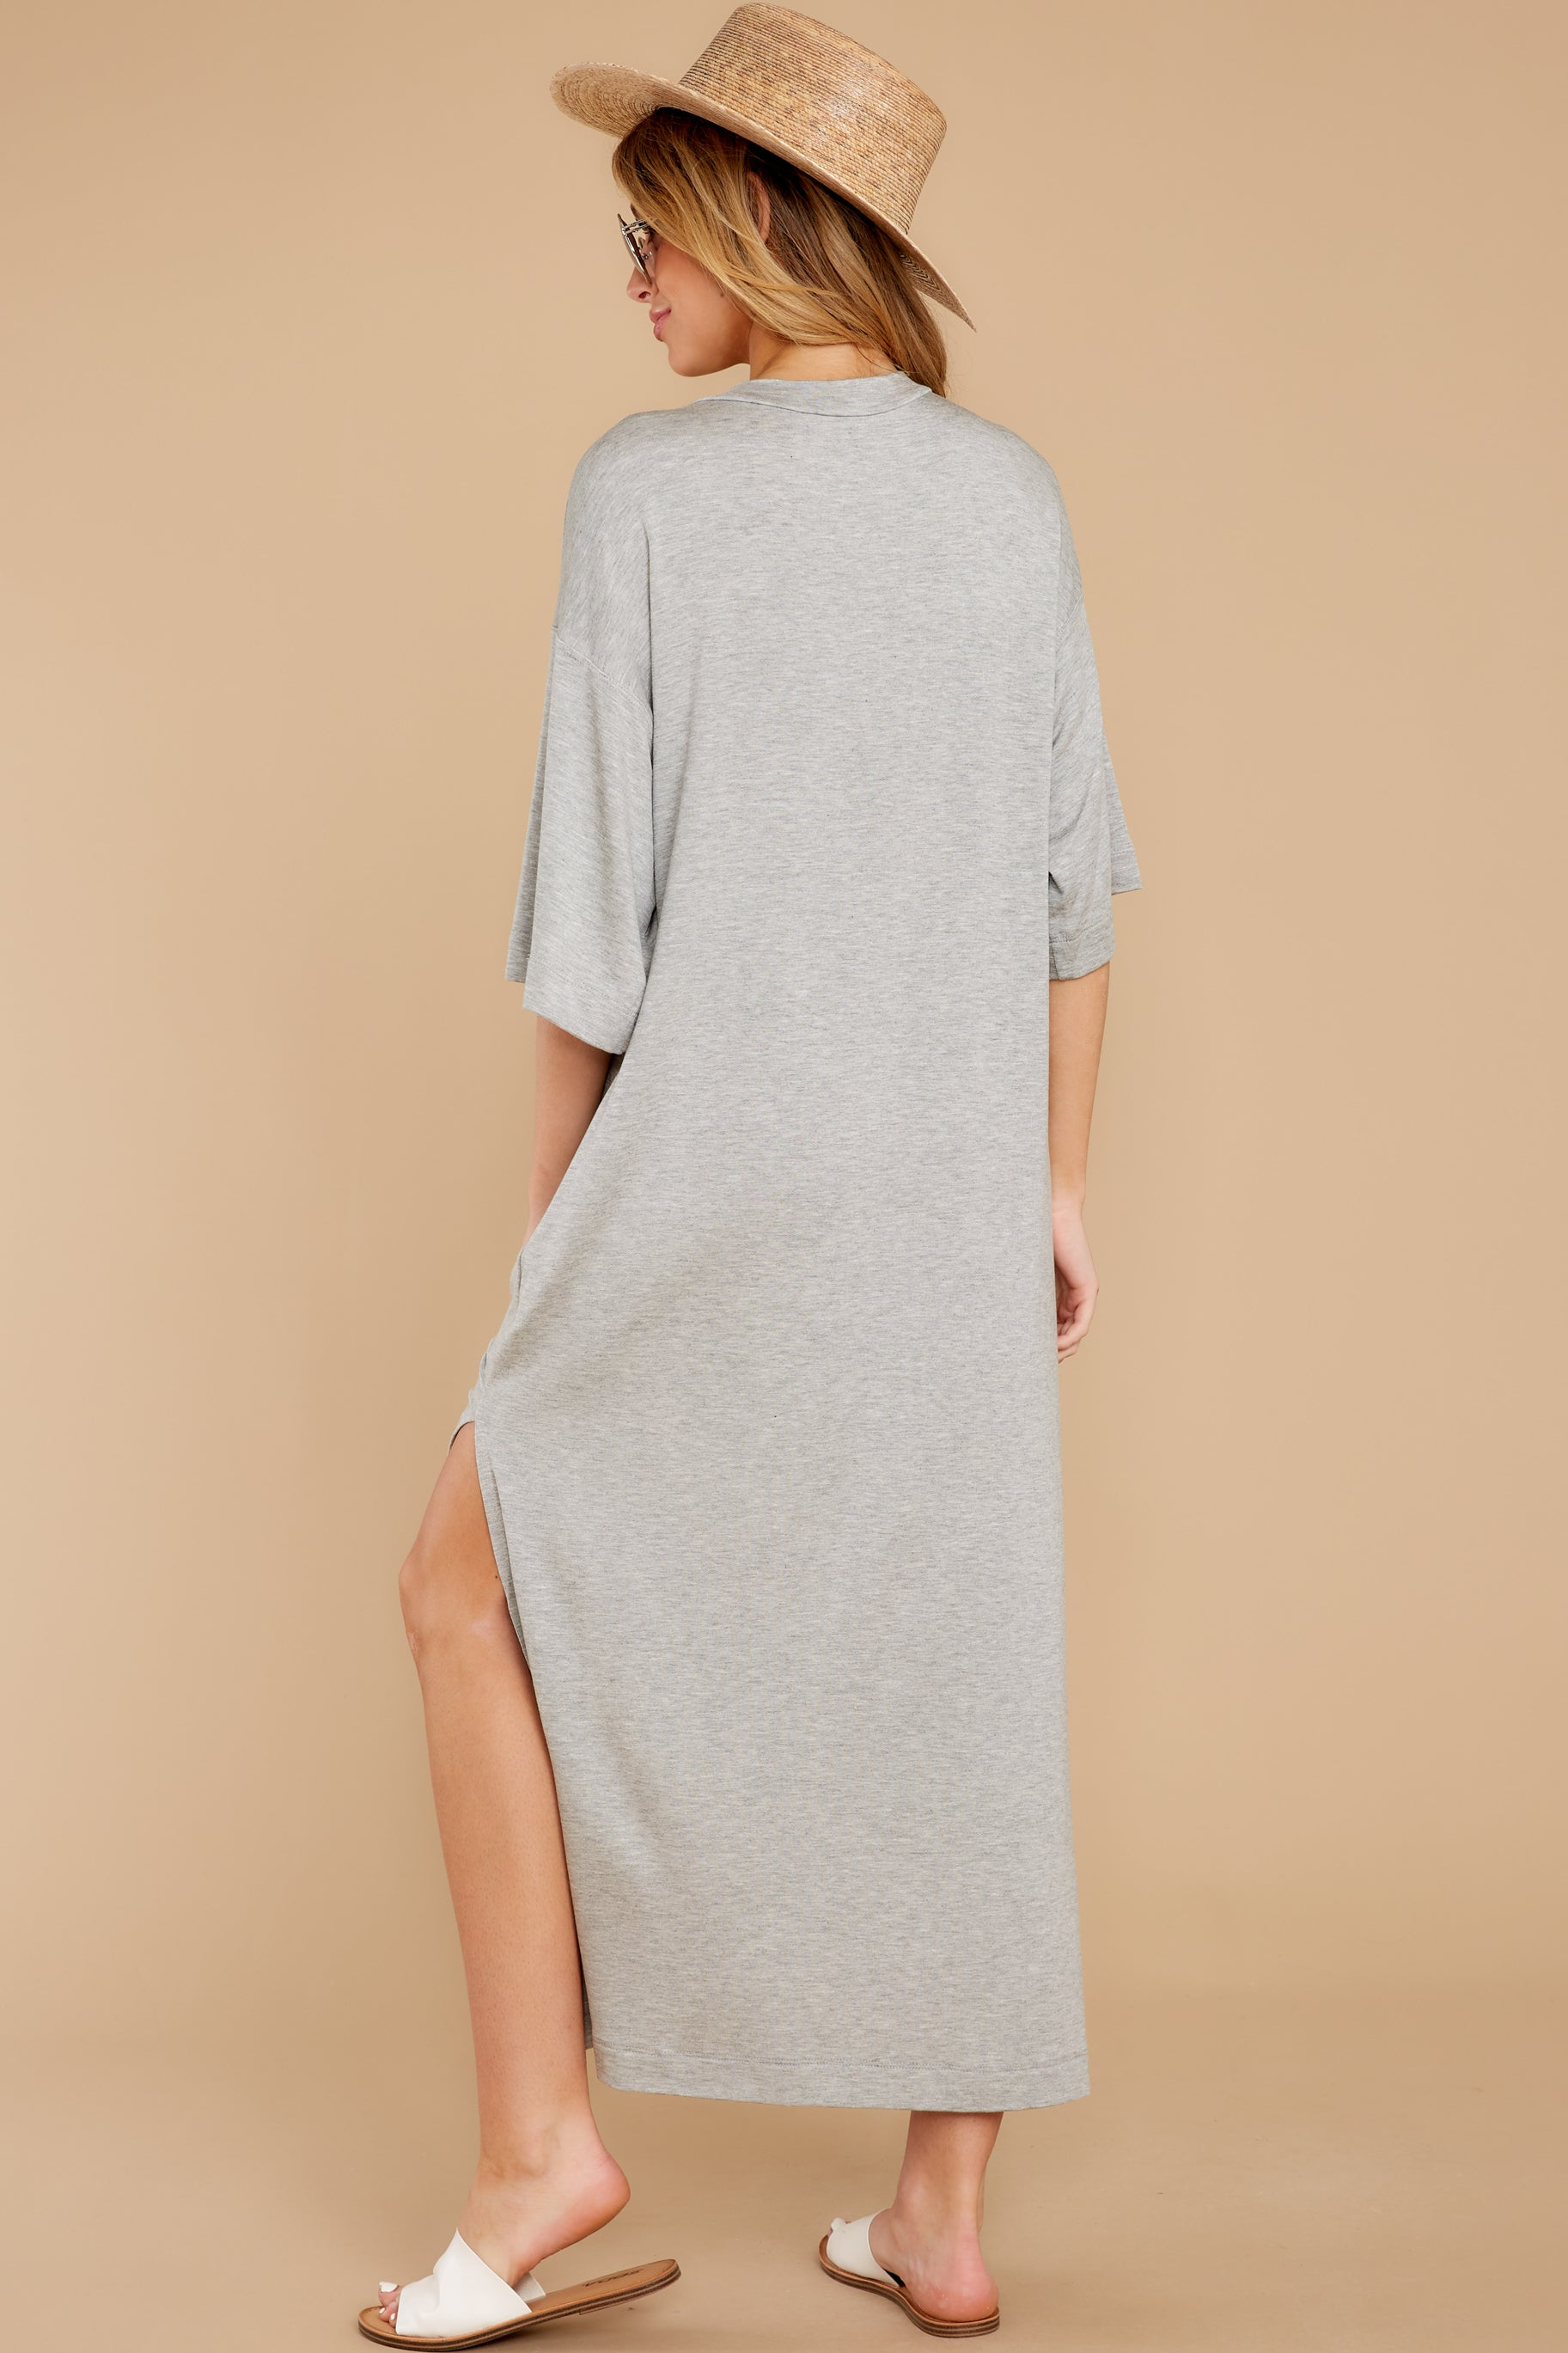 7 Lounging Around Grey Dress at reddress.com